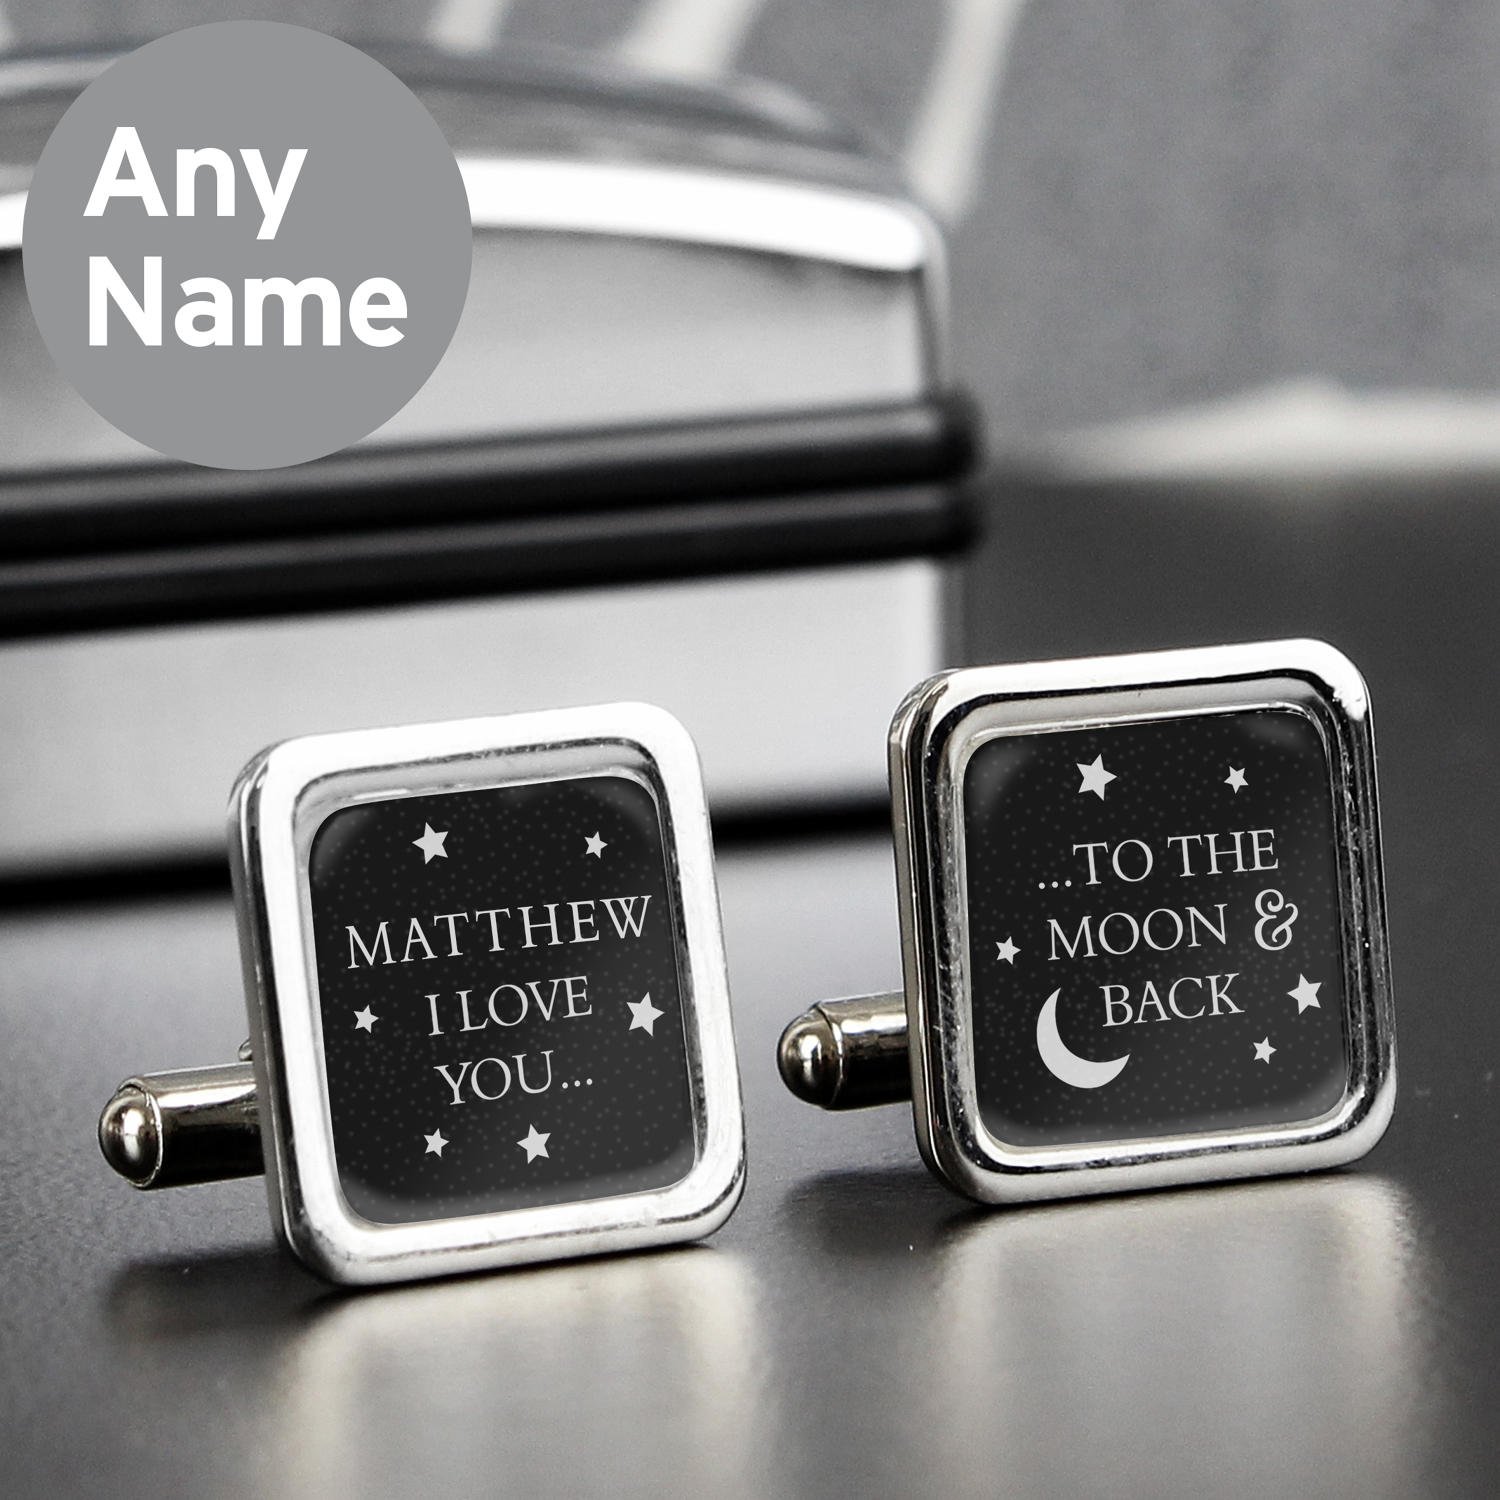 To The Moon and Back Cufflinks